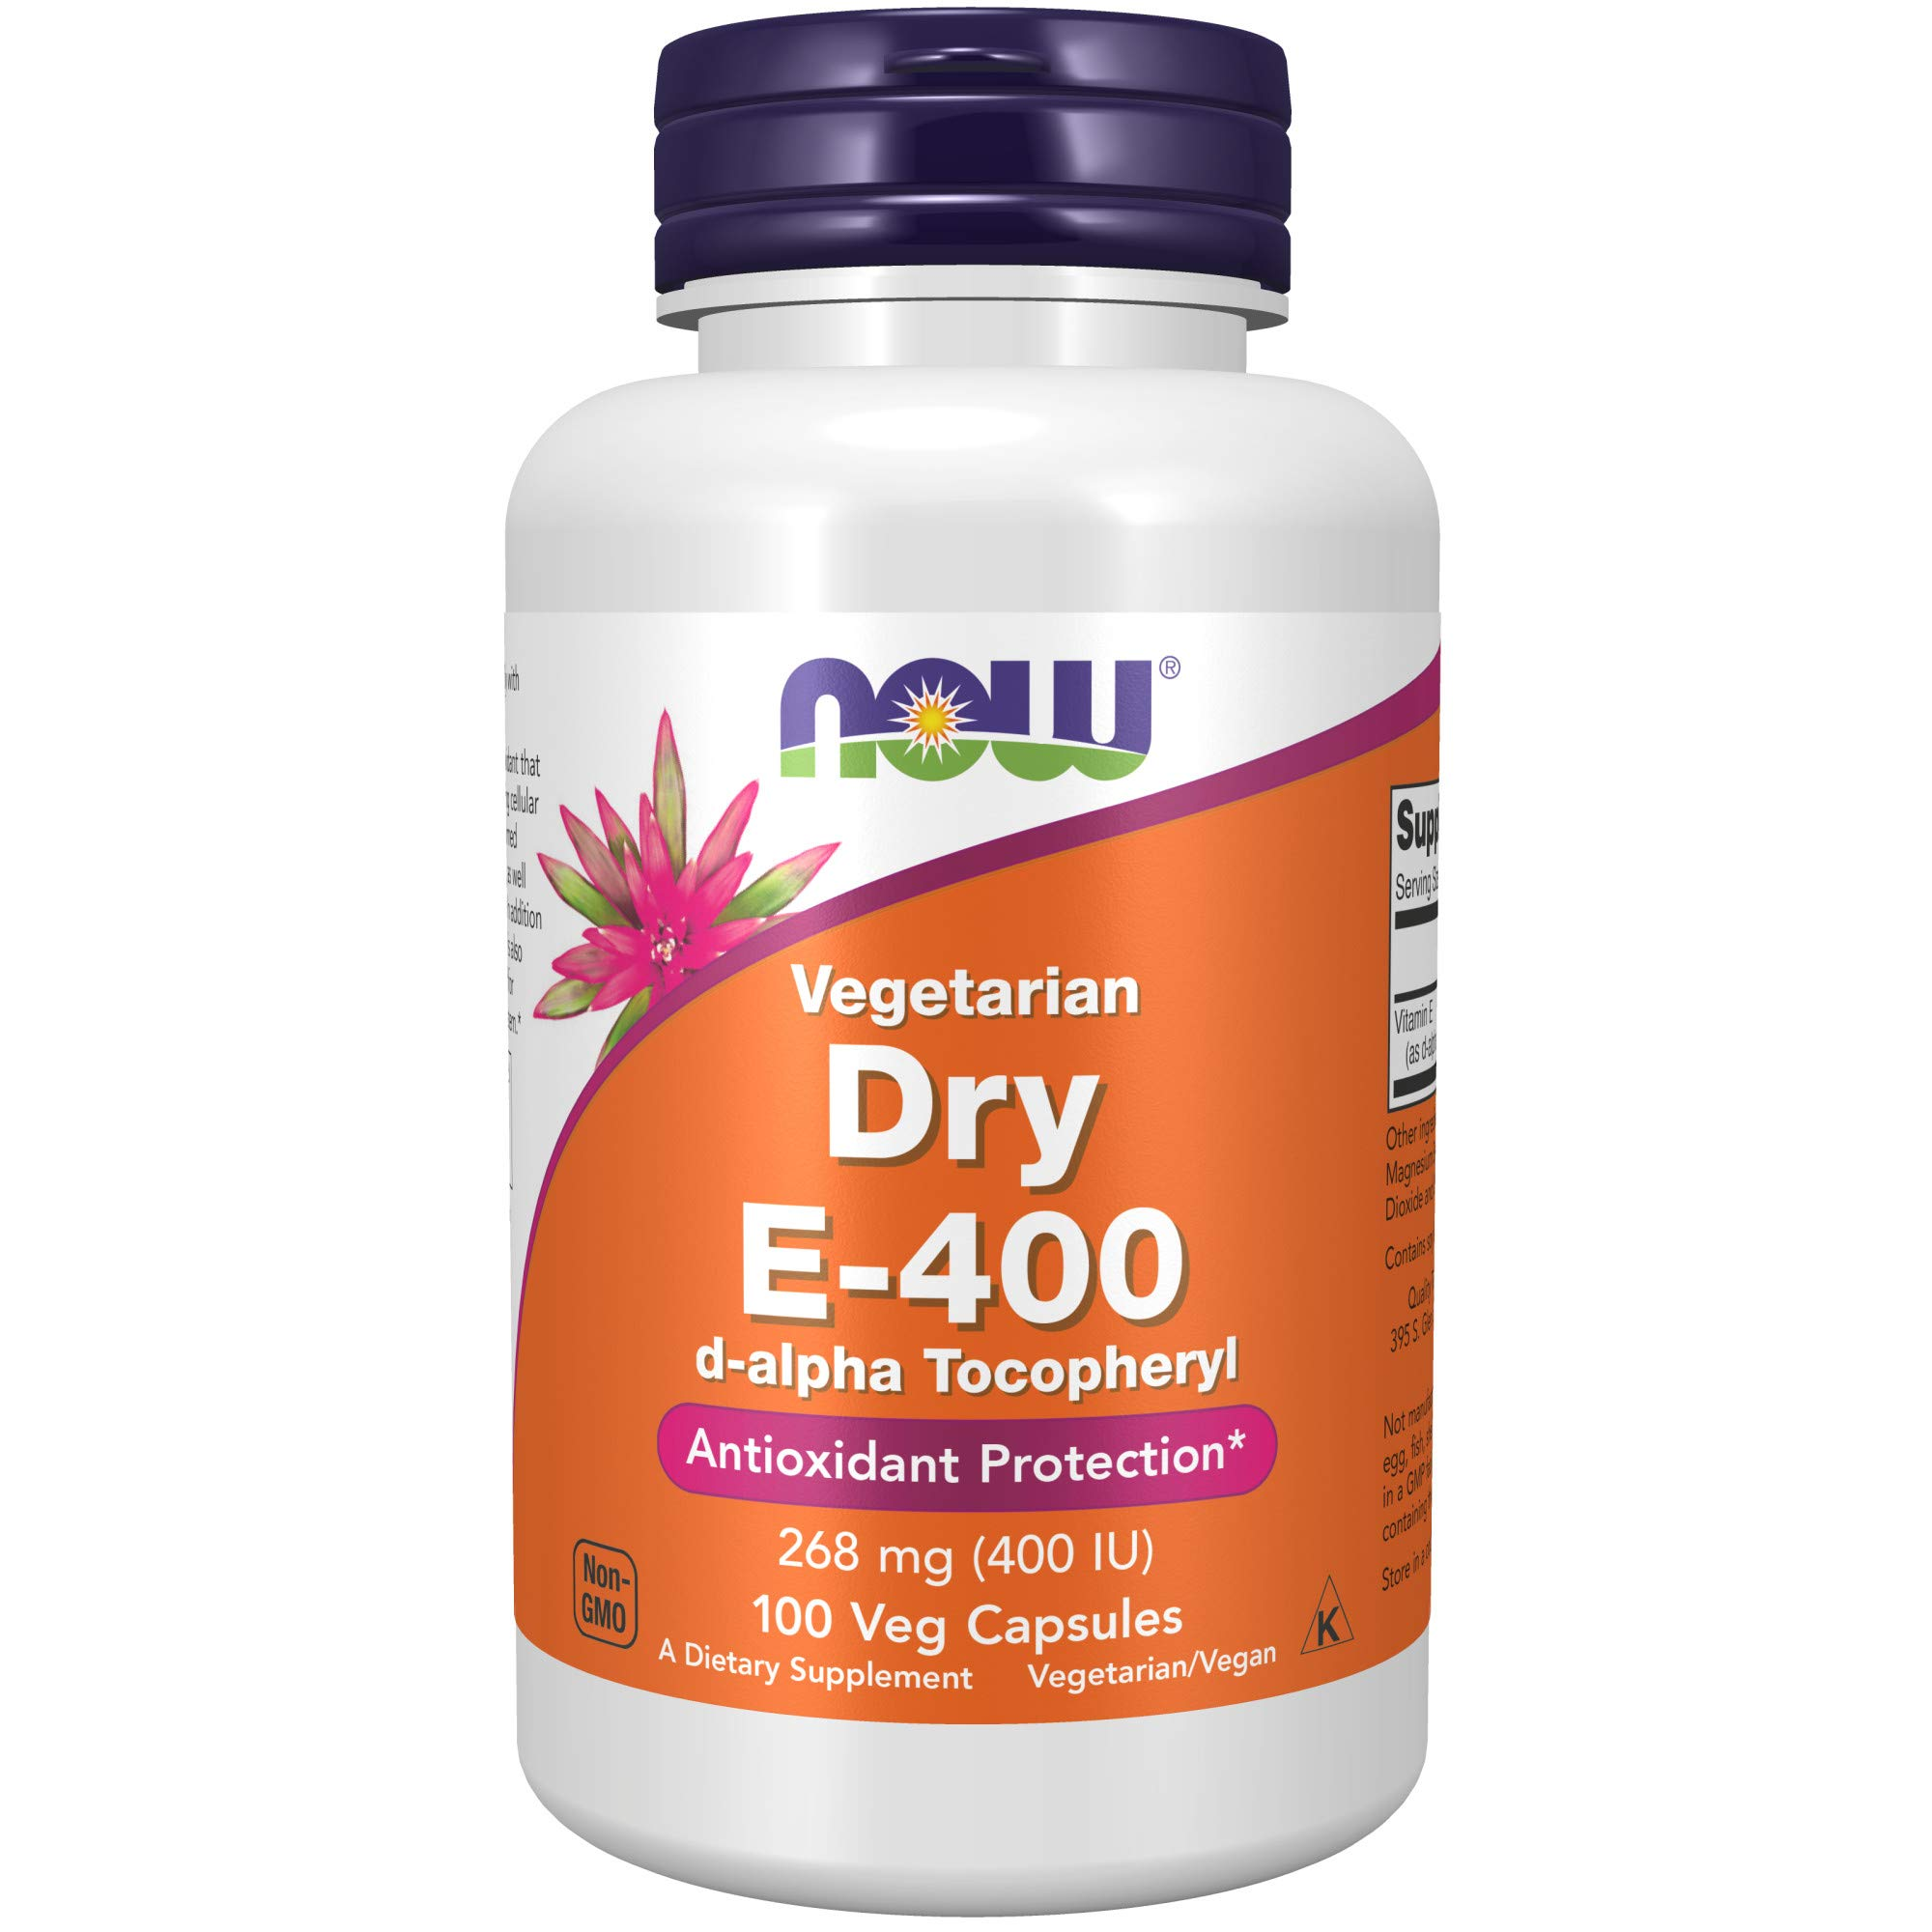 NOW Supplements, Vitamin E-400 IU D-Alpha Tocopheryl, Dry, Antioxidant Protection*, 100 Veg Capsules